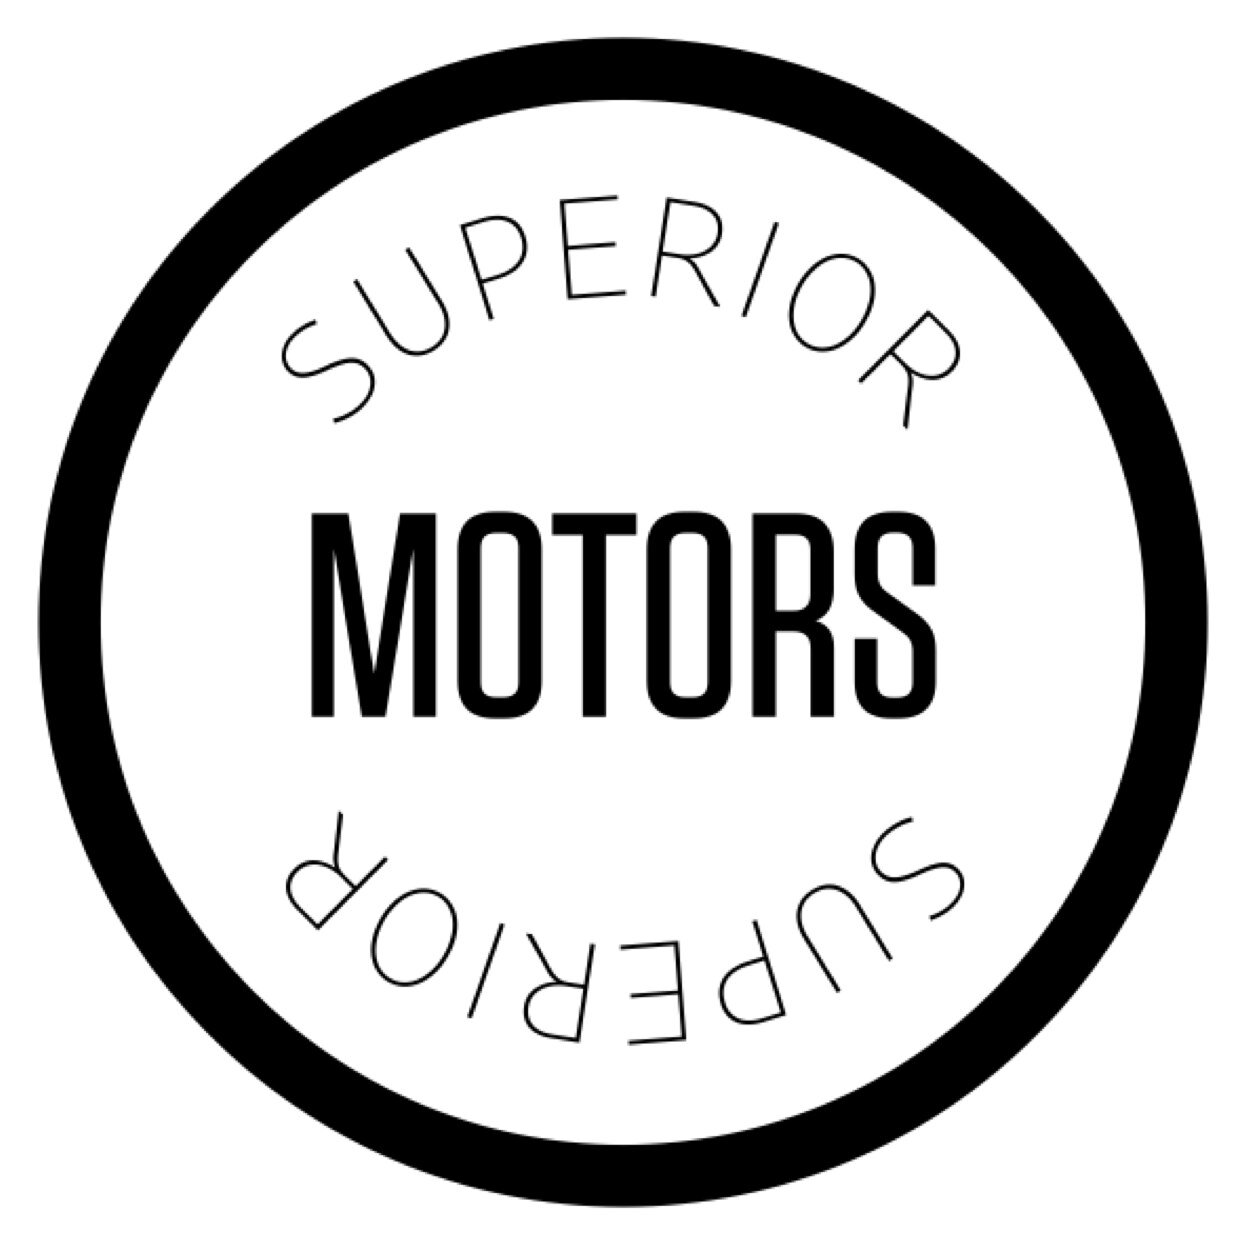 Superior Motors Menu >> Superior Motors On Twitter Every Wednesday And Thursday